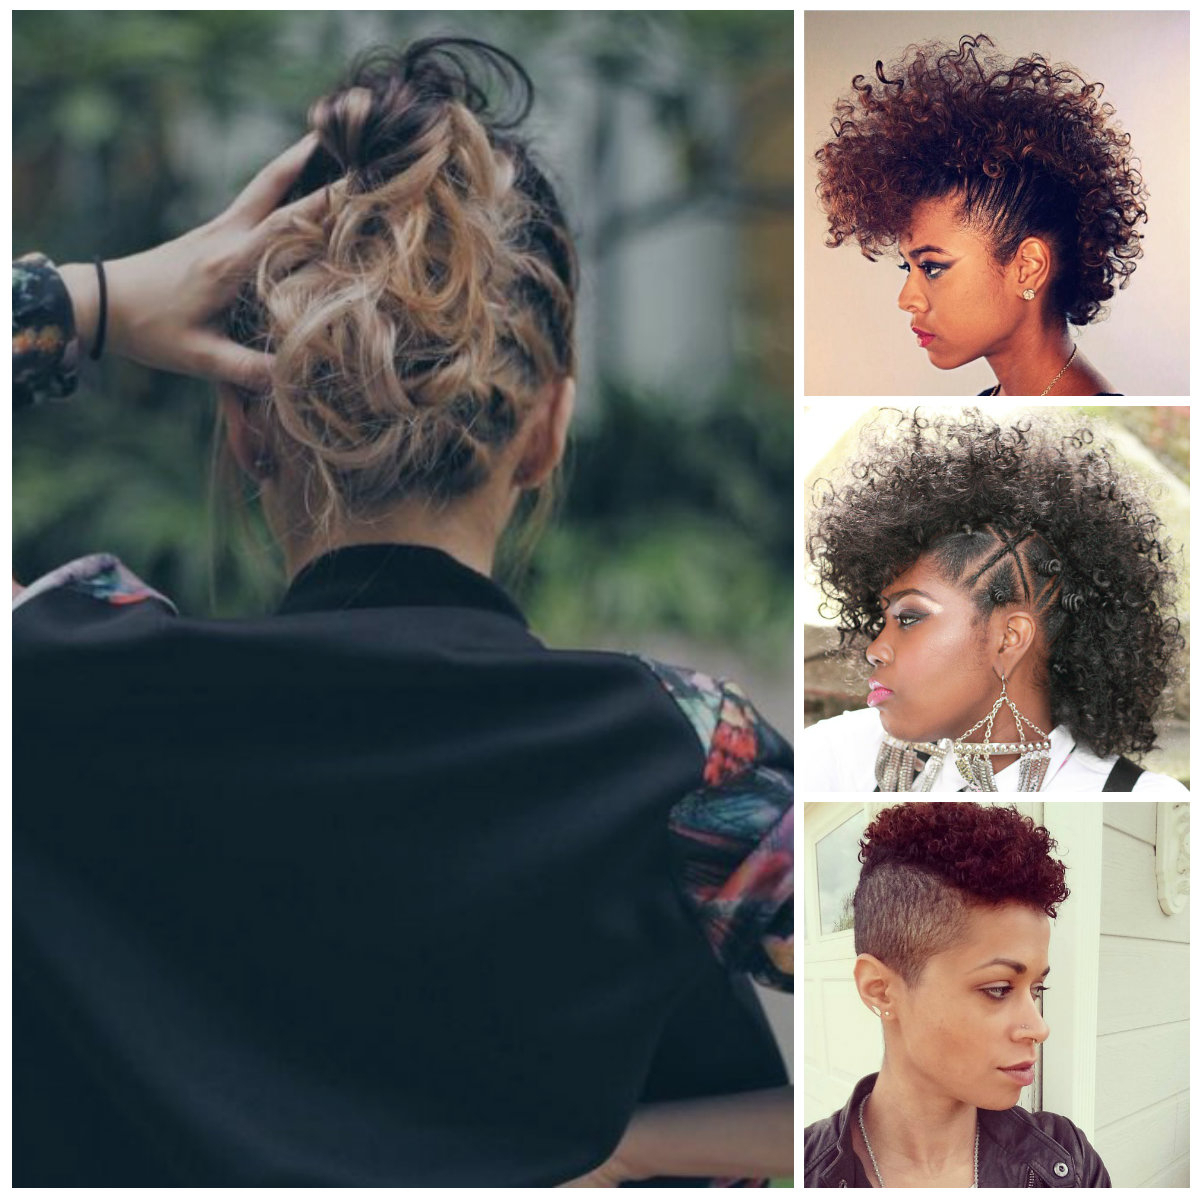 2019 Haircuts For 2020 Afro Mohawk Hairstyles For Women (View 1 of 20)